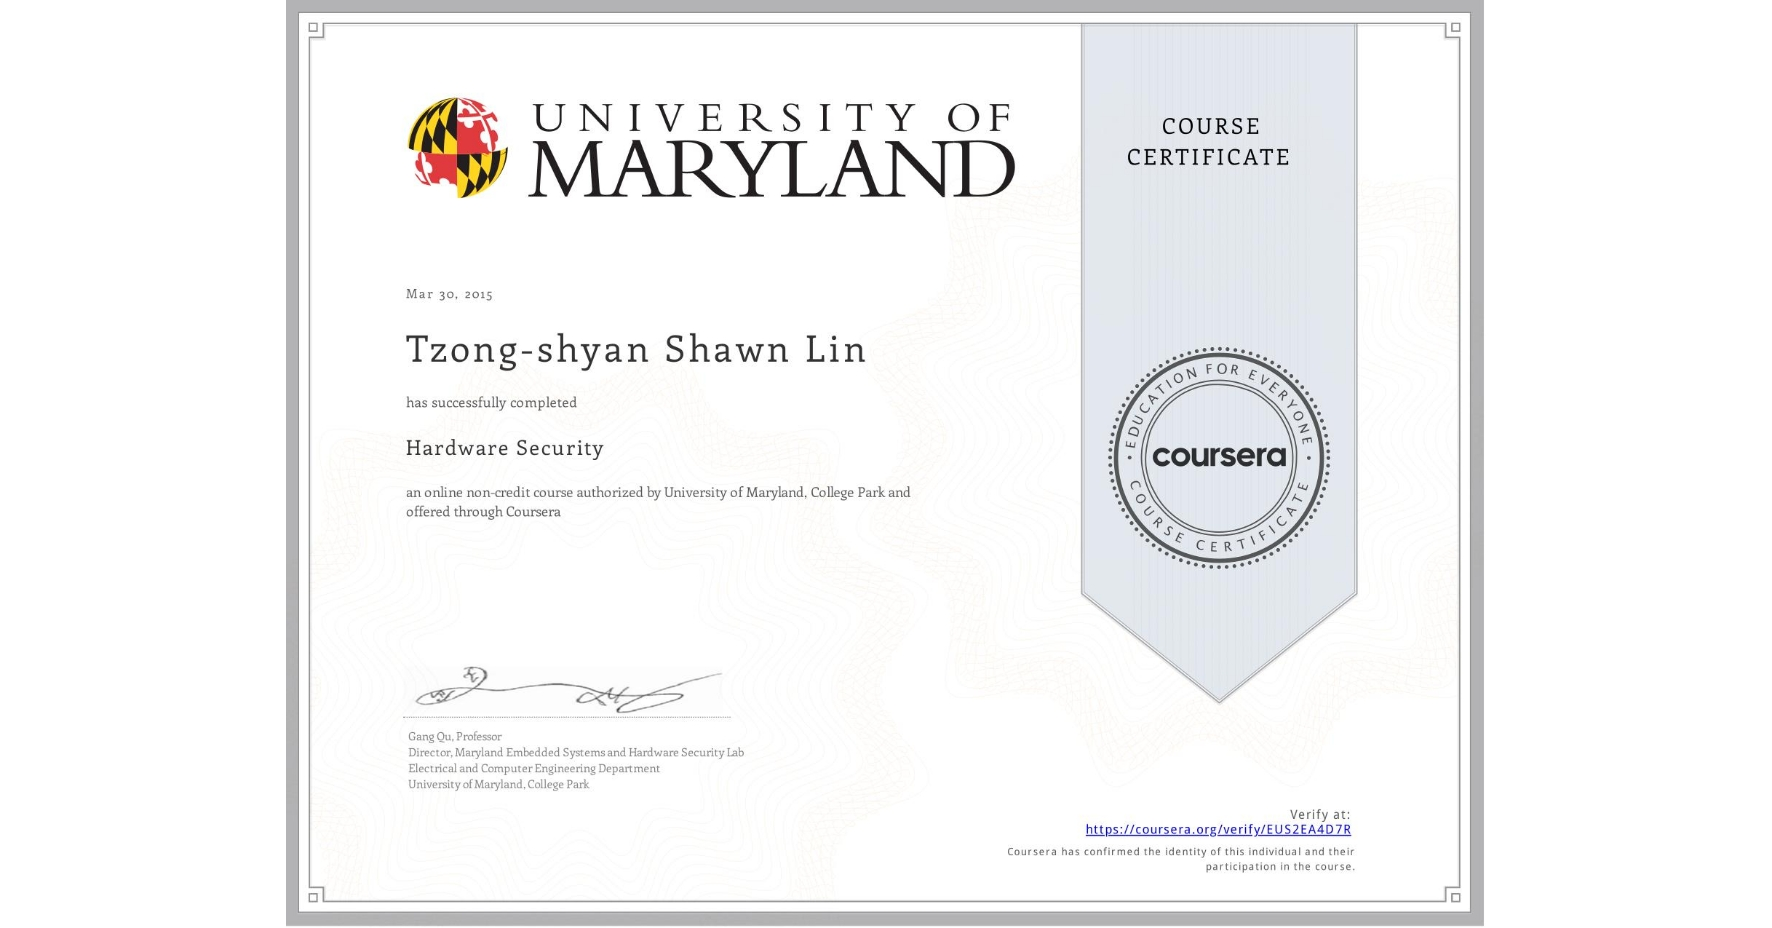 View certificate for Tzong-shyan Shawn Lin, Hardware Security, an online non-credit course authorized by University of Maryland, College Park and offered through Coursera